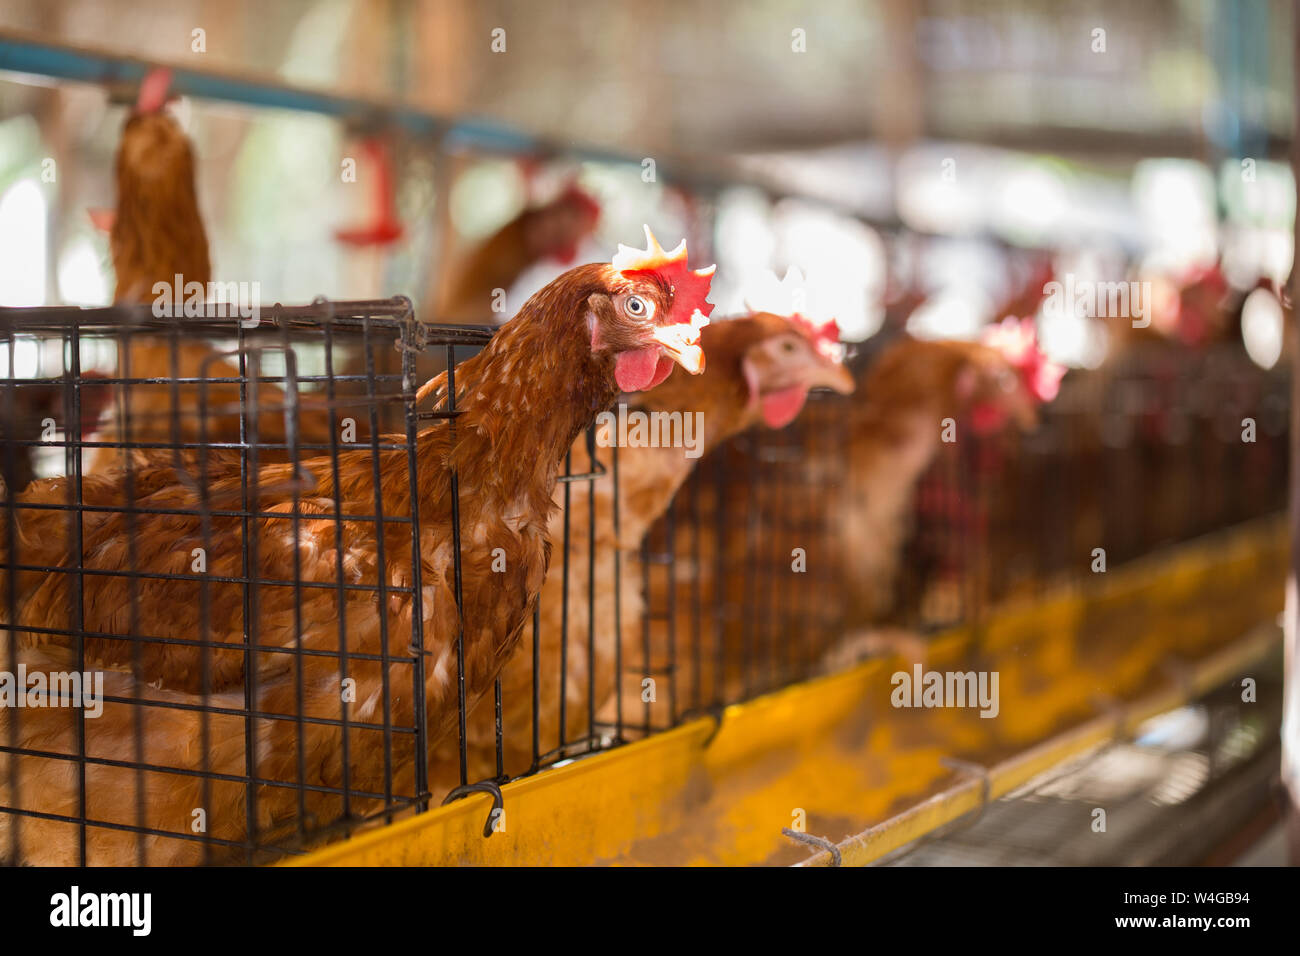 Battery Cages Stock Photos & Battery Cages Stock Images - Alamy